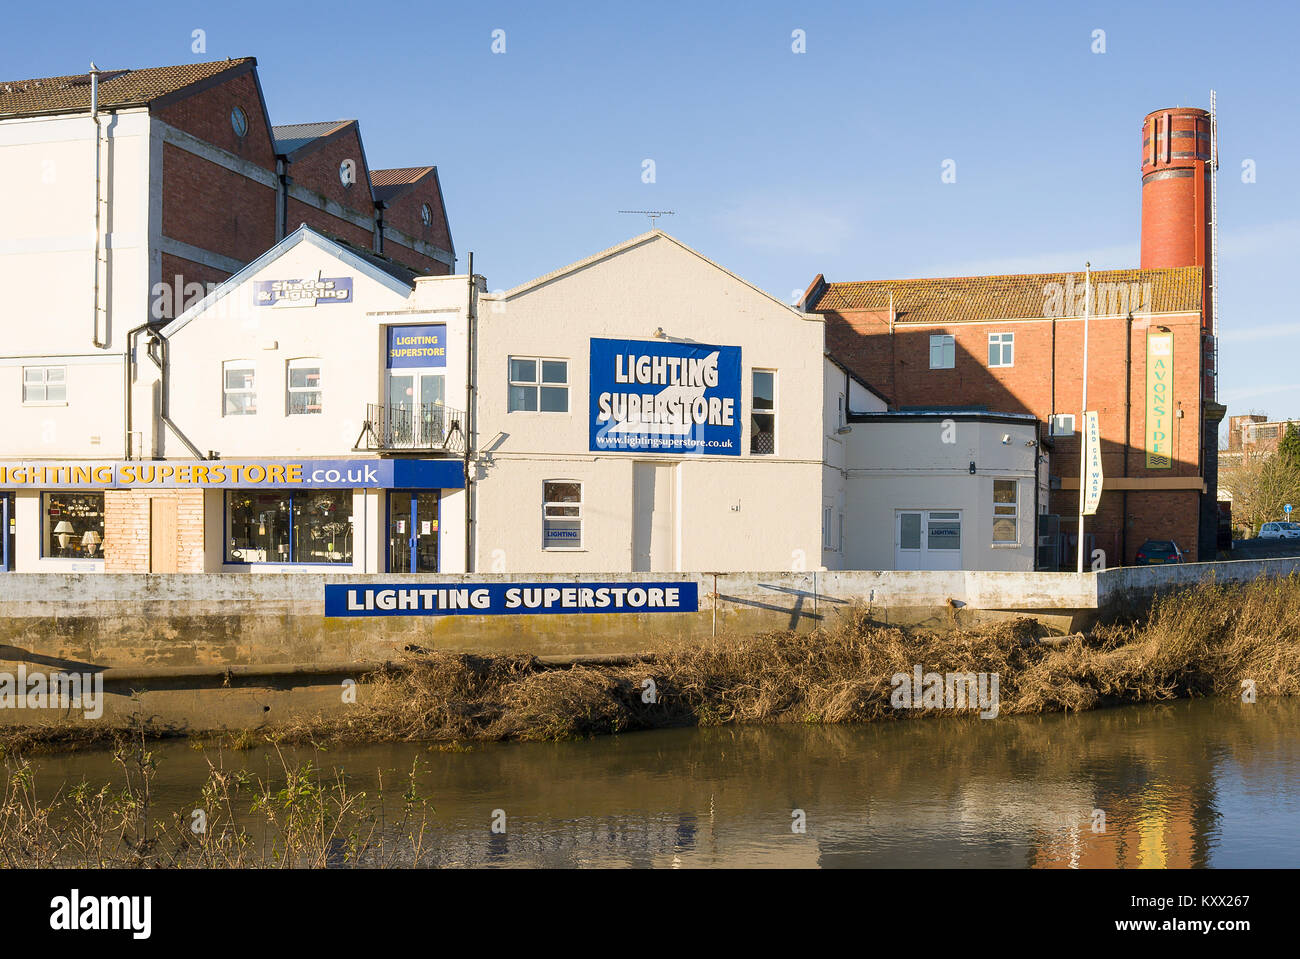 Lighting Superstore Is One Business Now Operating From A Former Wholesale Dairy Plant Beside The River Avon In Melksham Wiltshire England UK